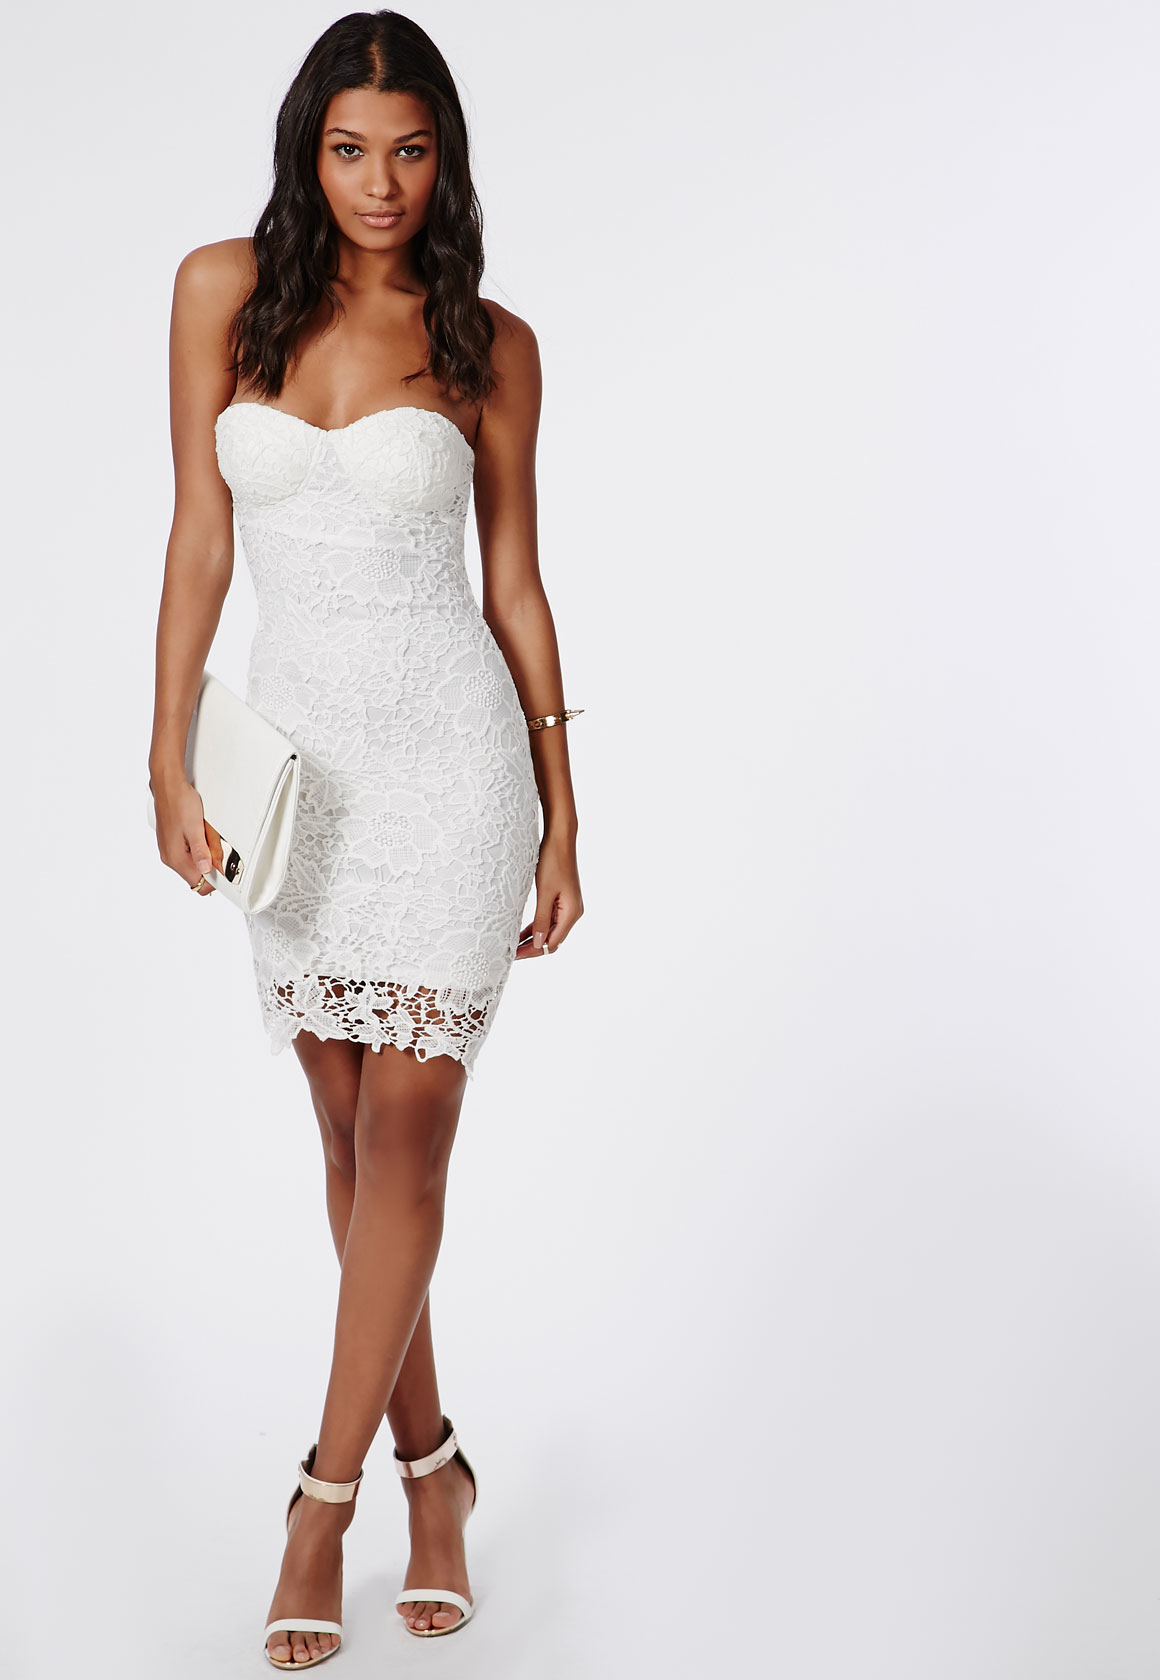 Lyst - Missguided Adelle Lace Bandeau Bodycon Dress White ...